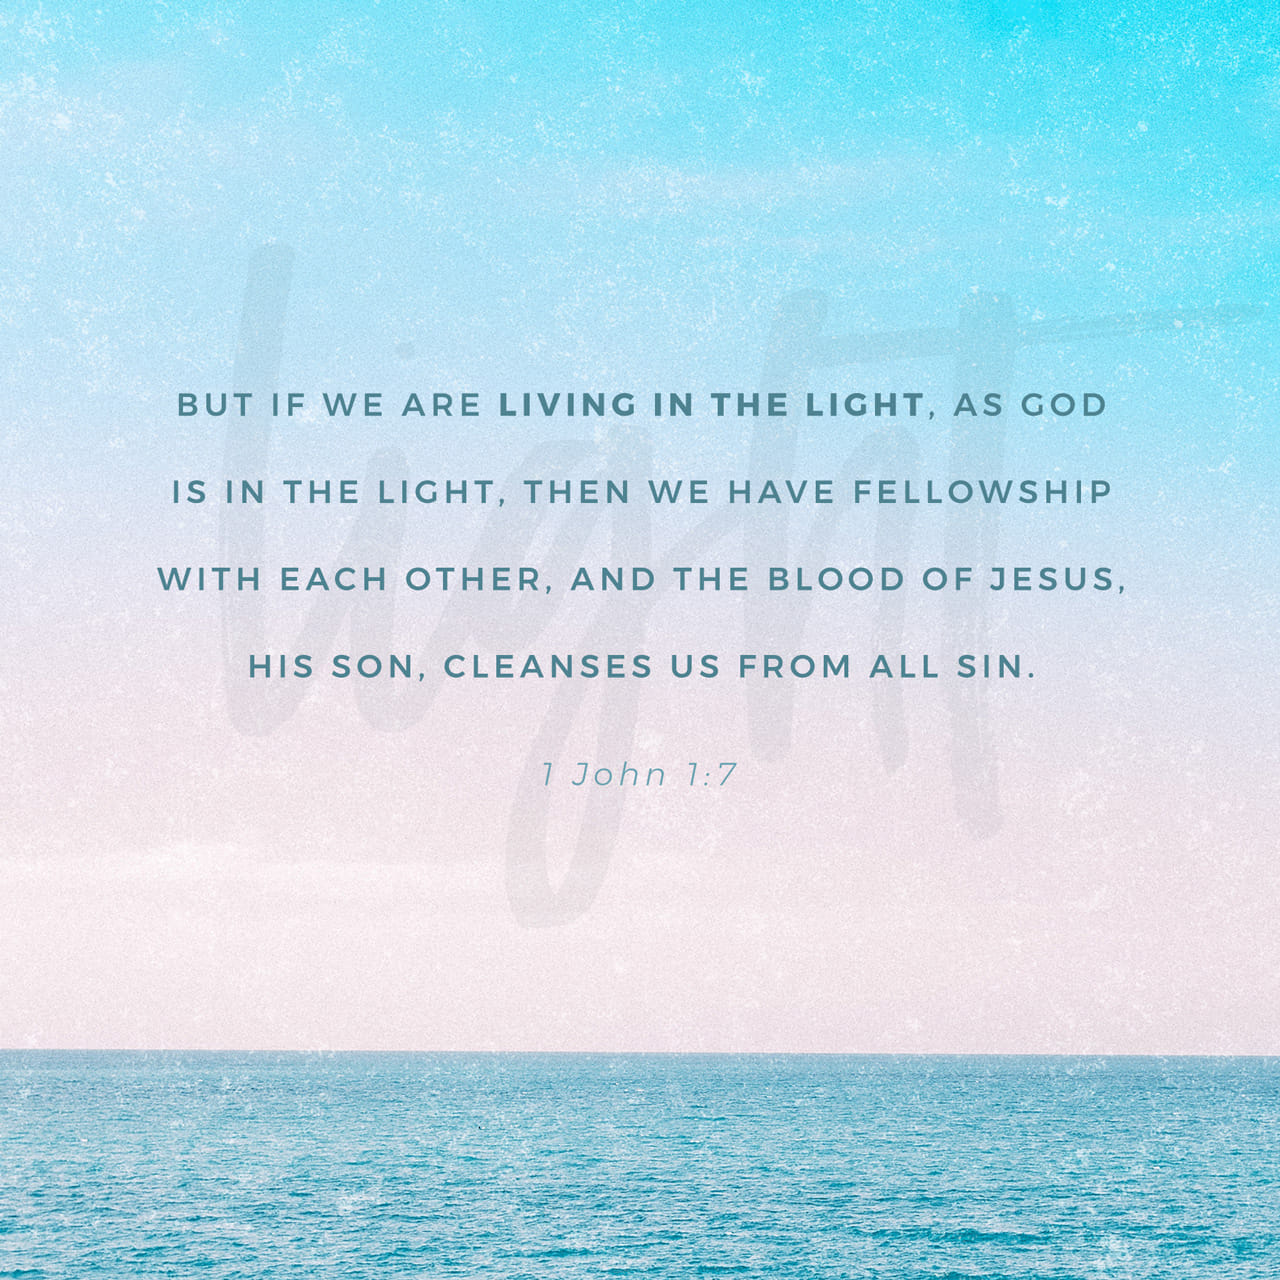 1 John 1:7 But if we [really] are living and walking in the Light, as He [Himself] is in the Light, we have [true, unbroken] fellowship with one another, and the blood of Jesus Christ His Son cleanses (removes)